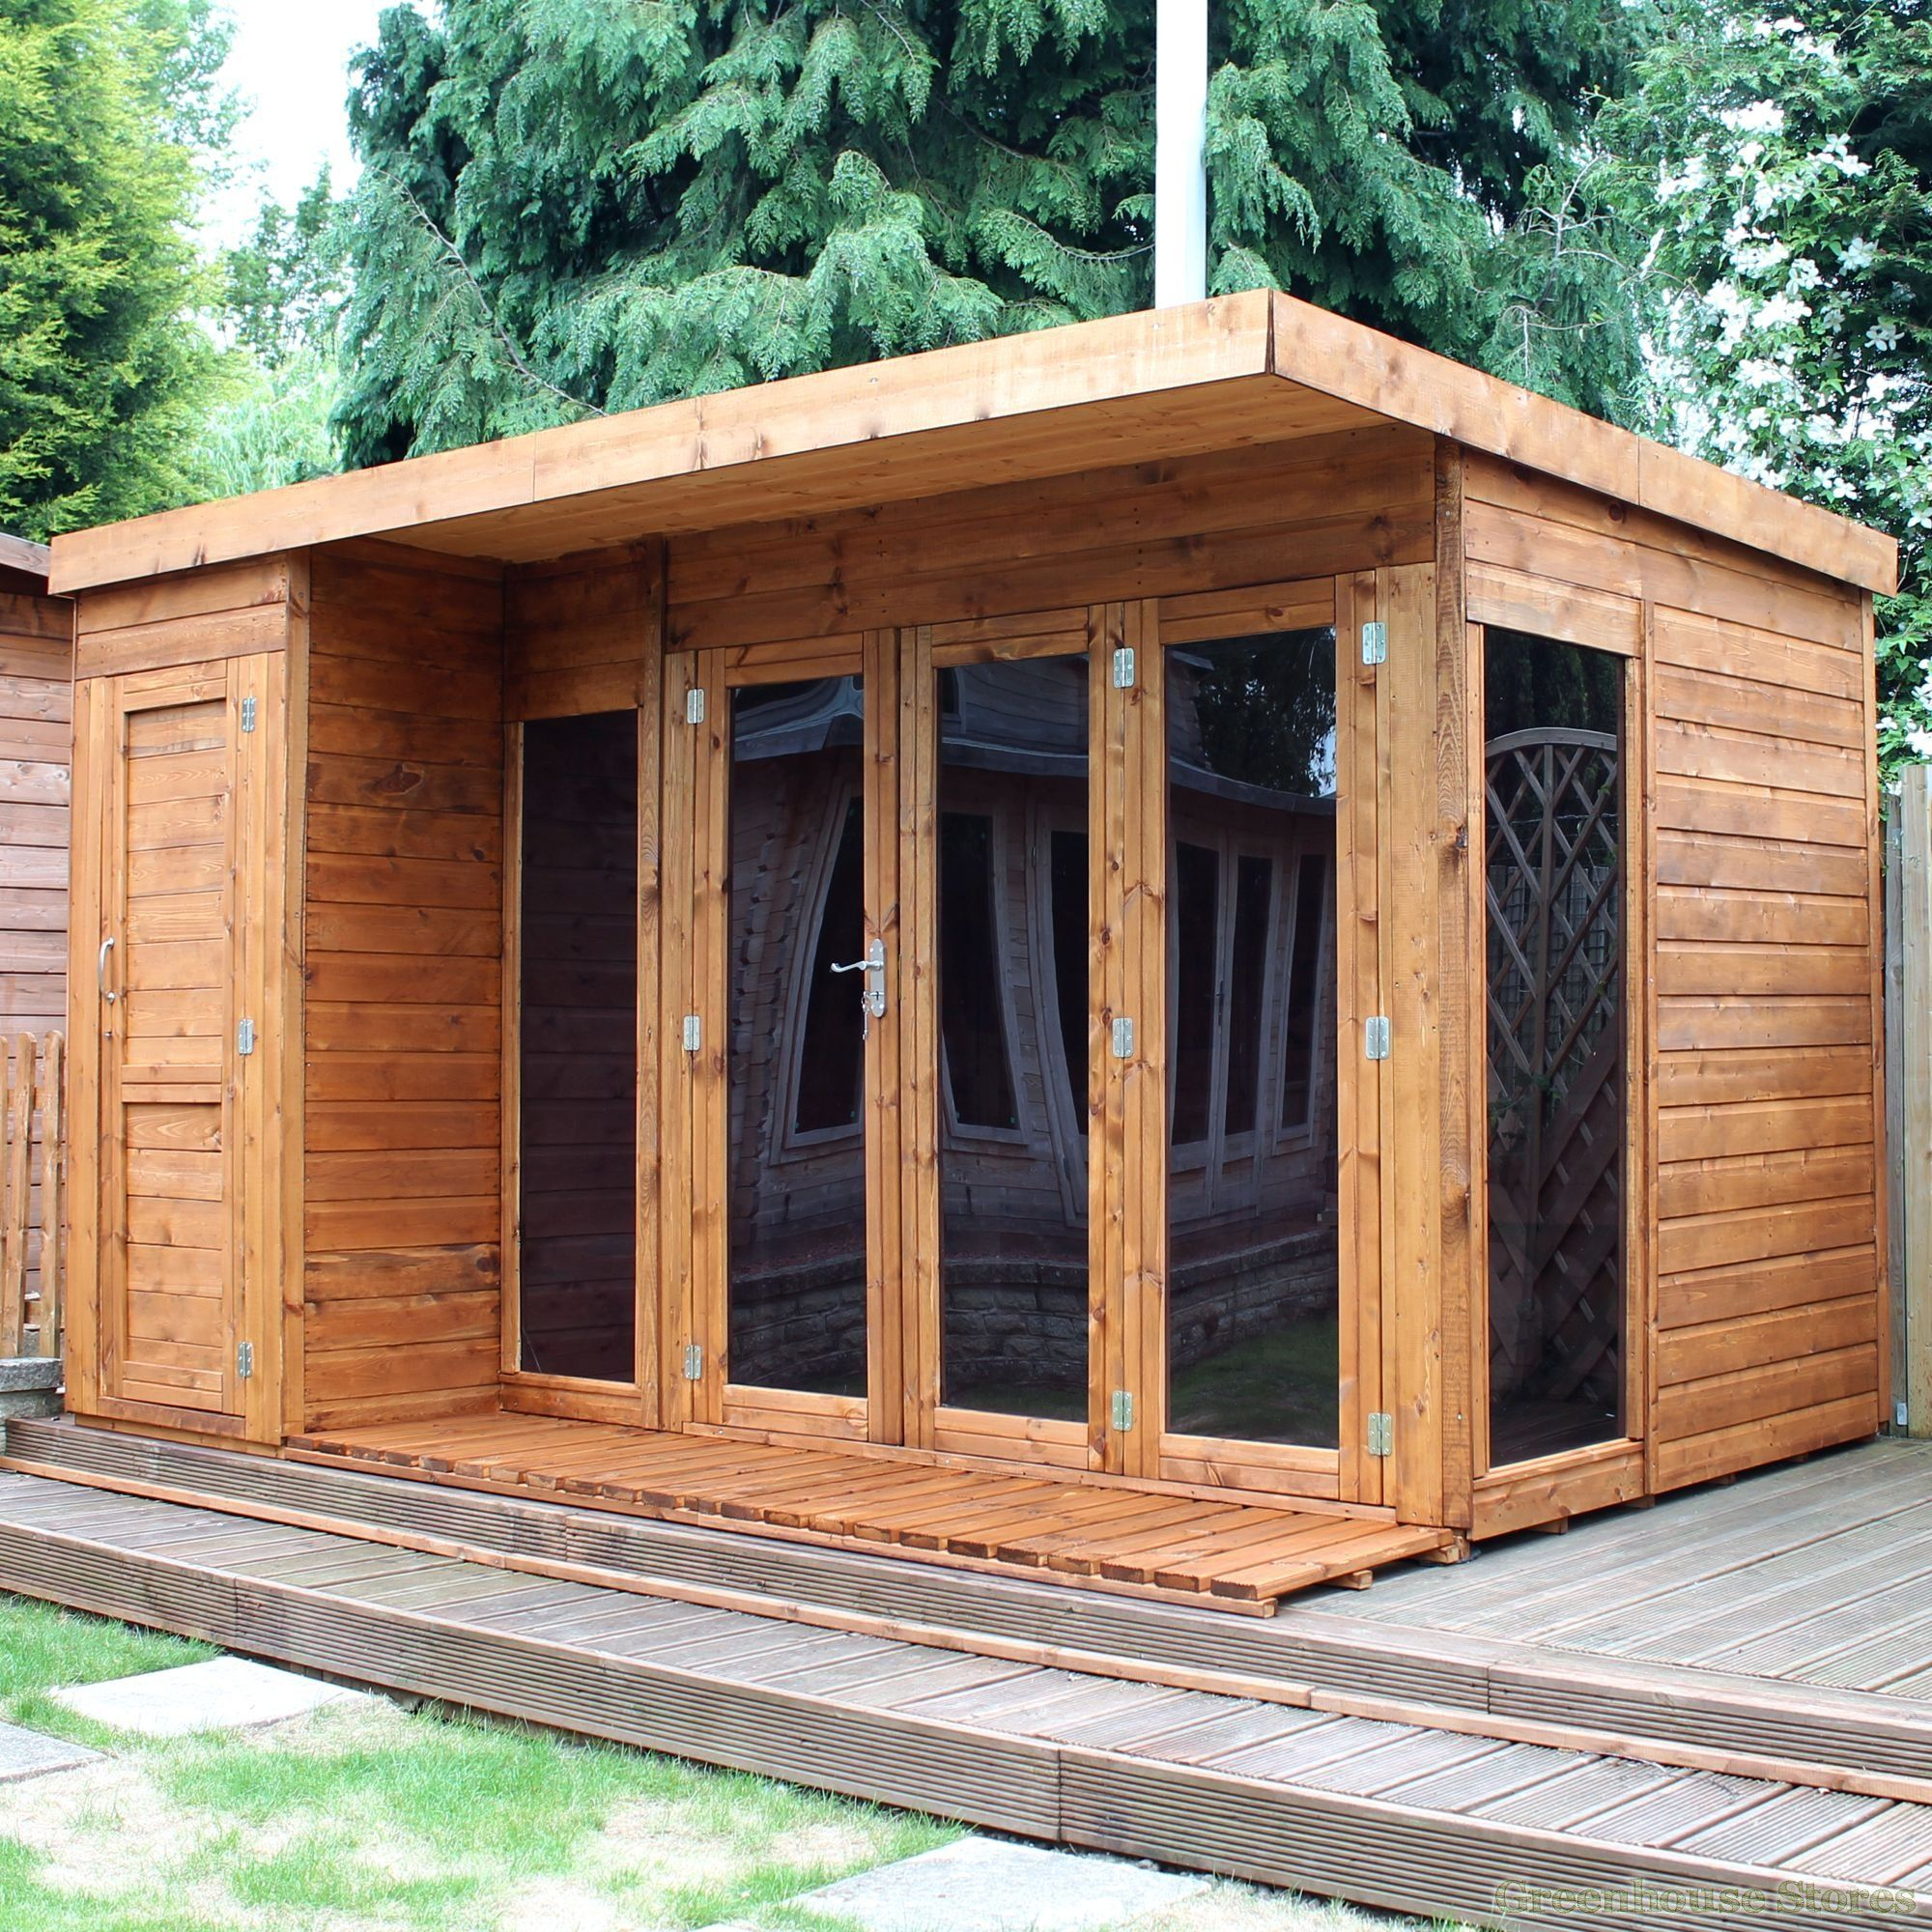 Best Modern Uk Crime Writers Cotswold 12x8 Modern Garden Room With Side Shed